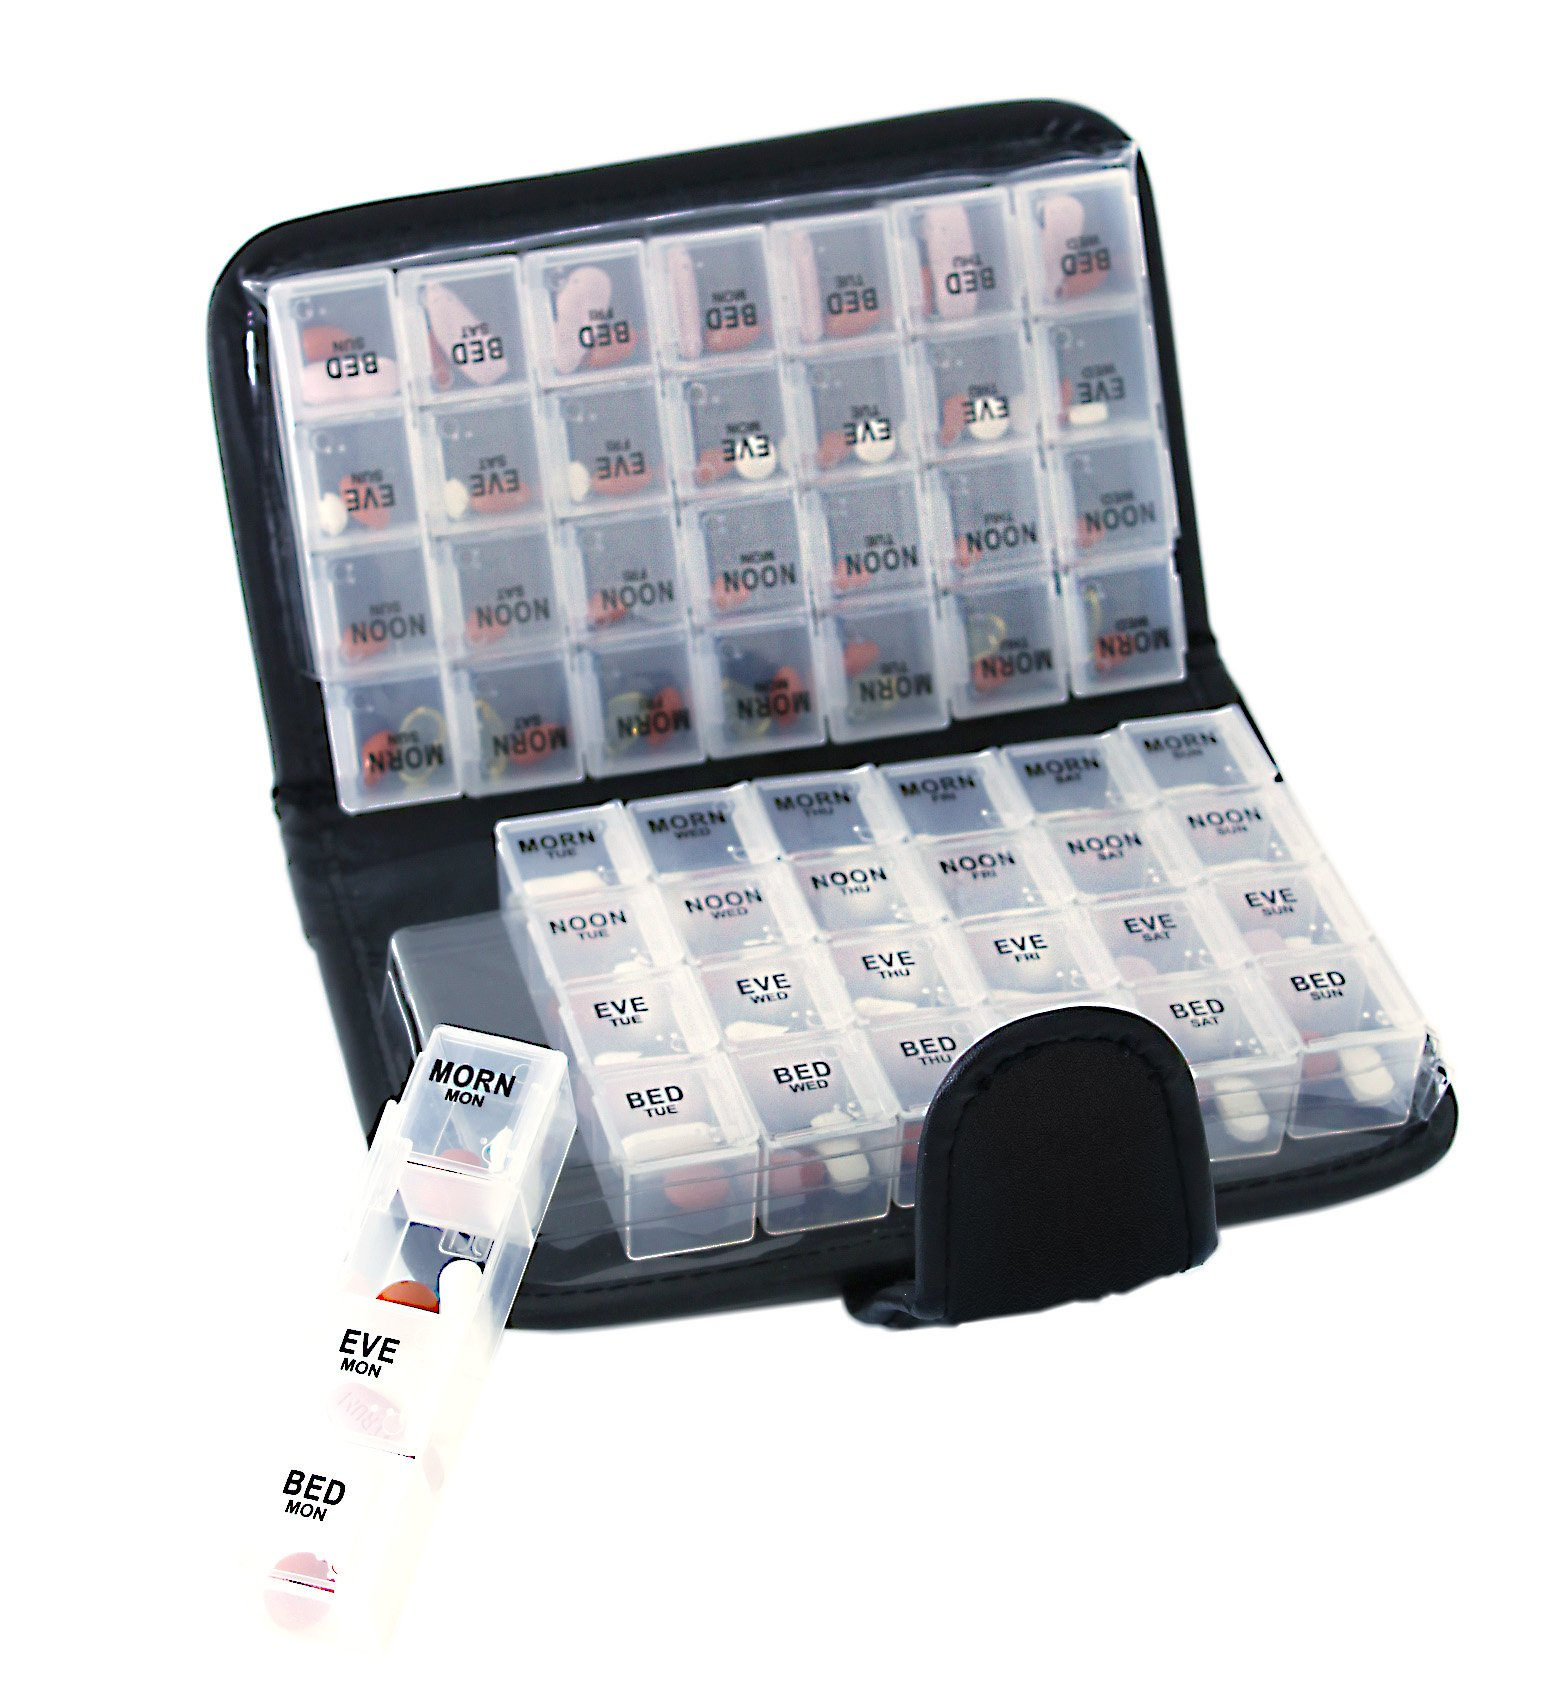 14 Day Pill & Vitamin Organizer 2 Weeks AM/PM 4 Doses a Day Travel Case Handy and Portable